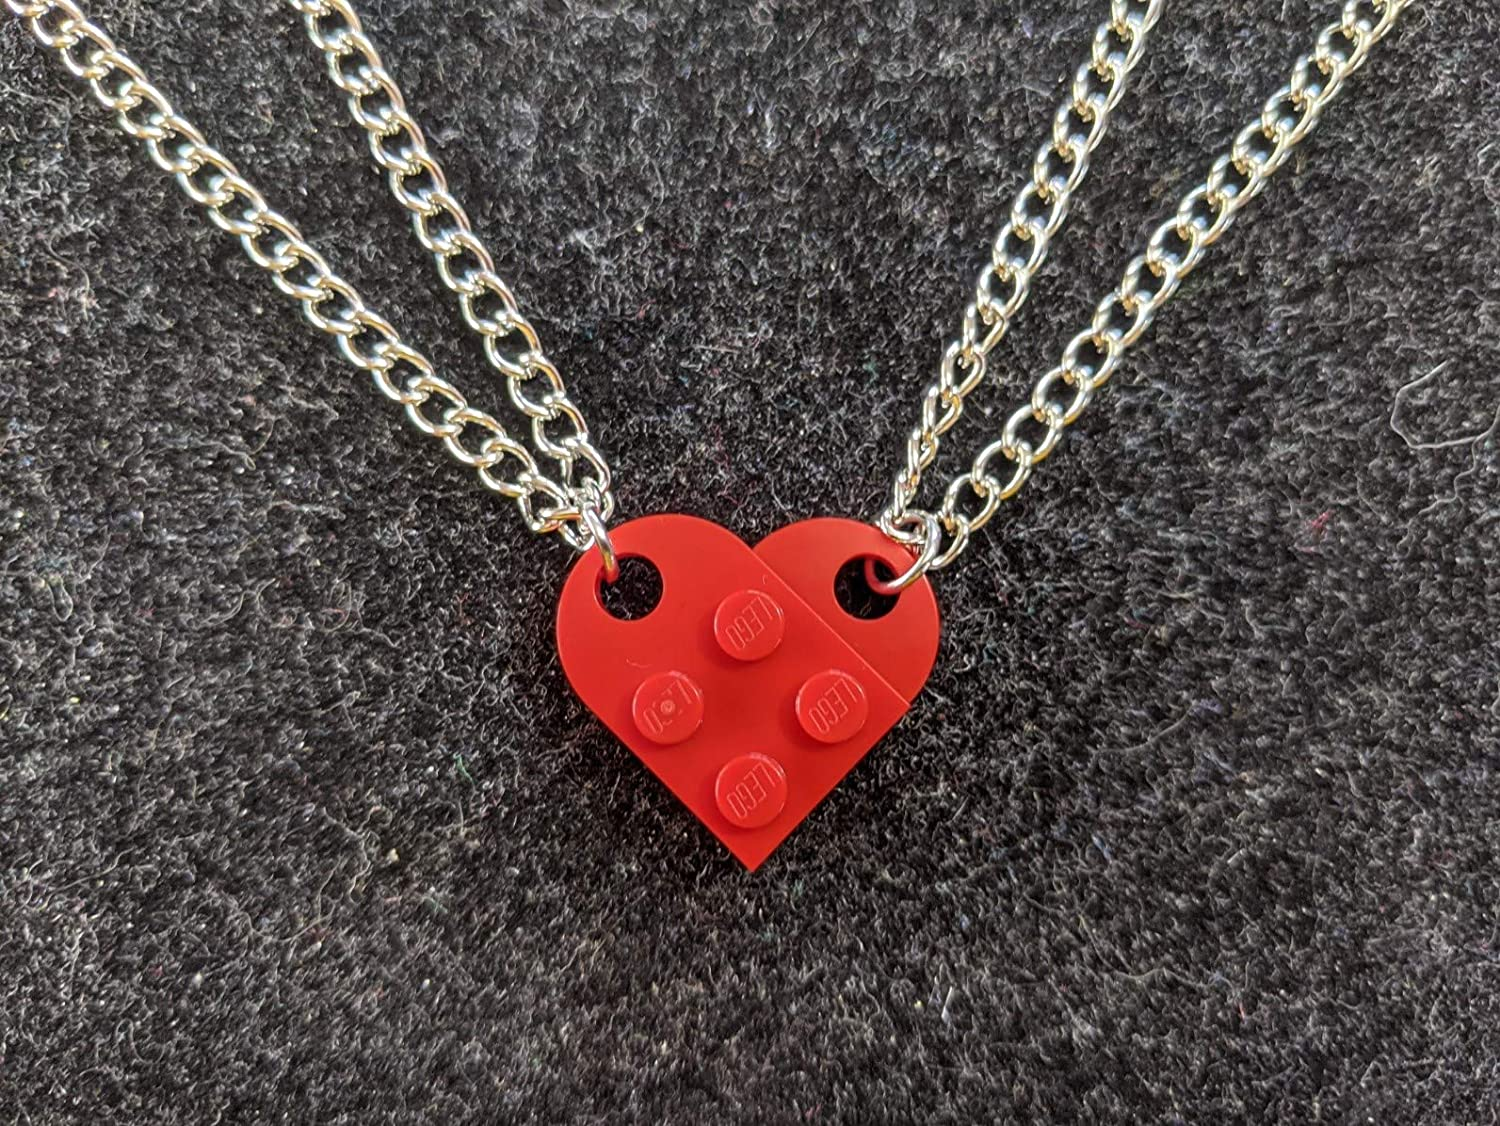 BrickCrafts Basic BFF His/Hers Brick Heart Charm Necklaces (Set of 2) - 16 colors